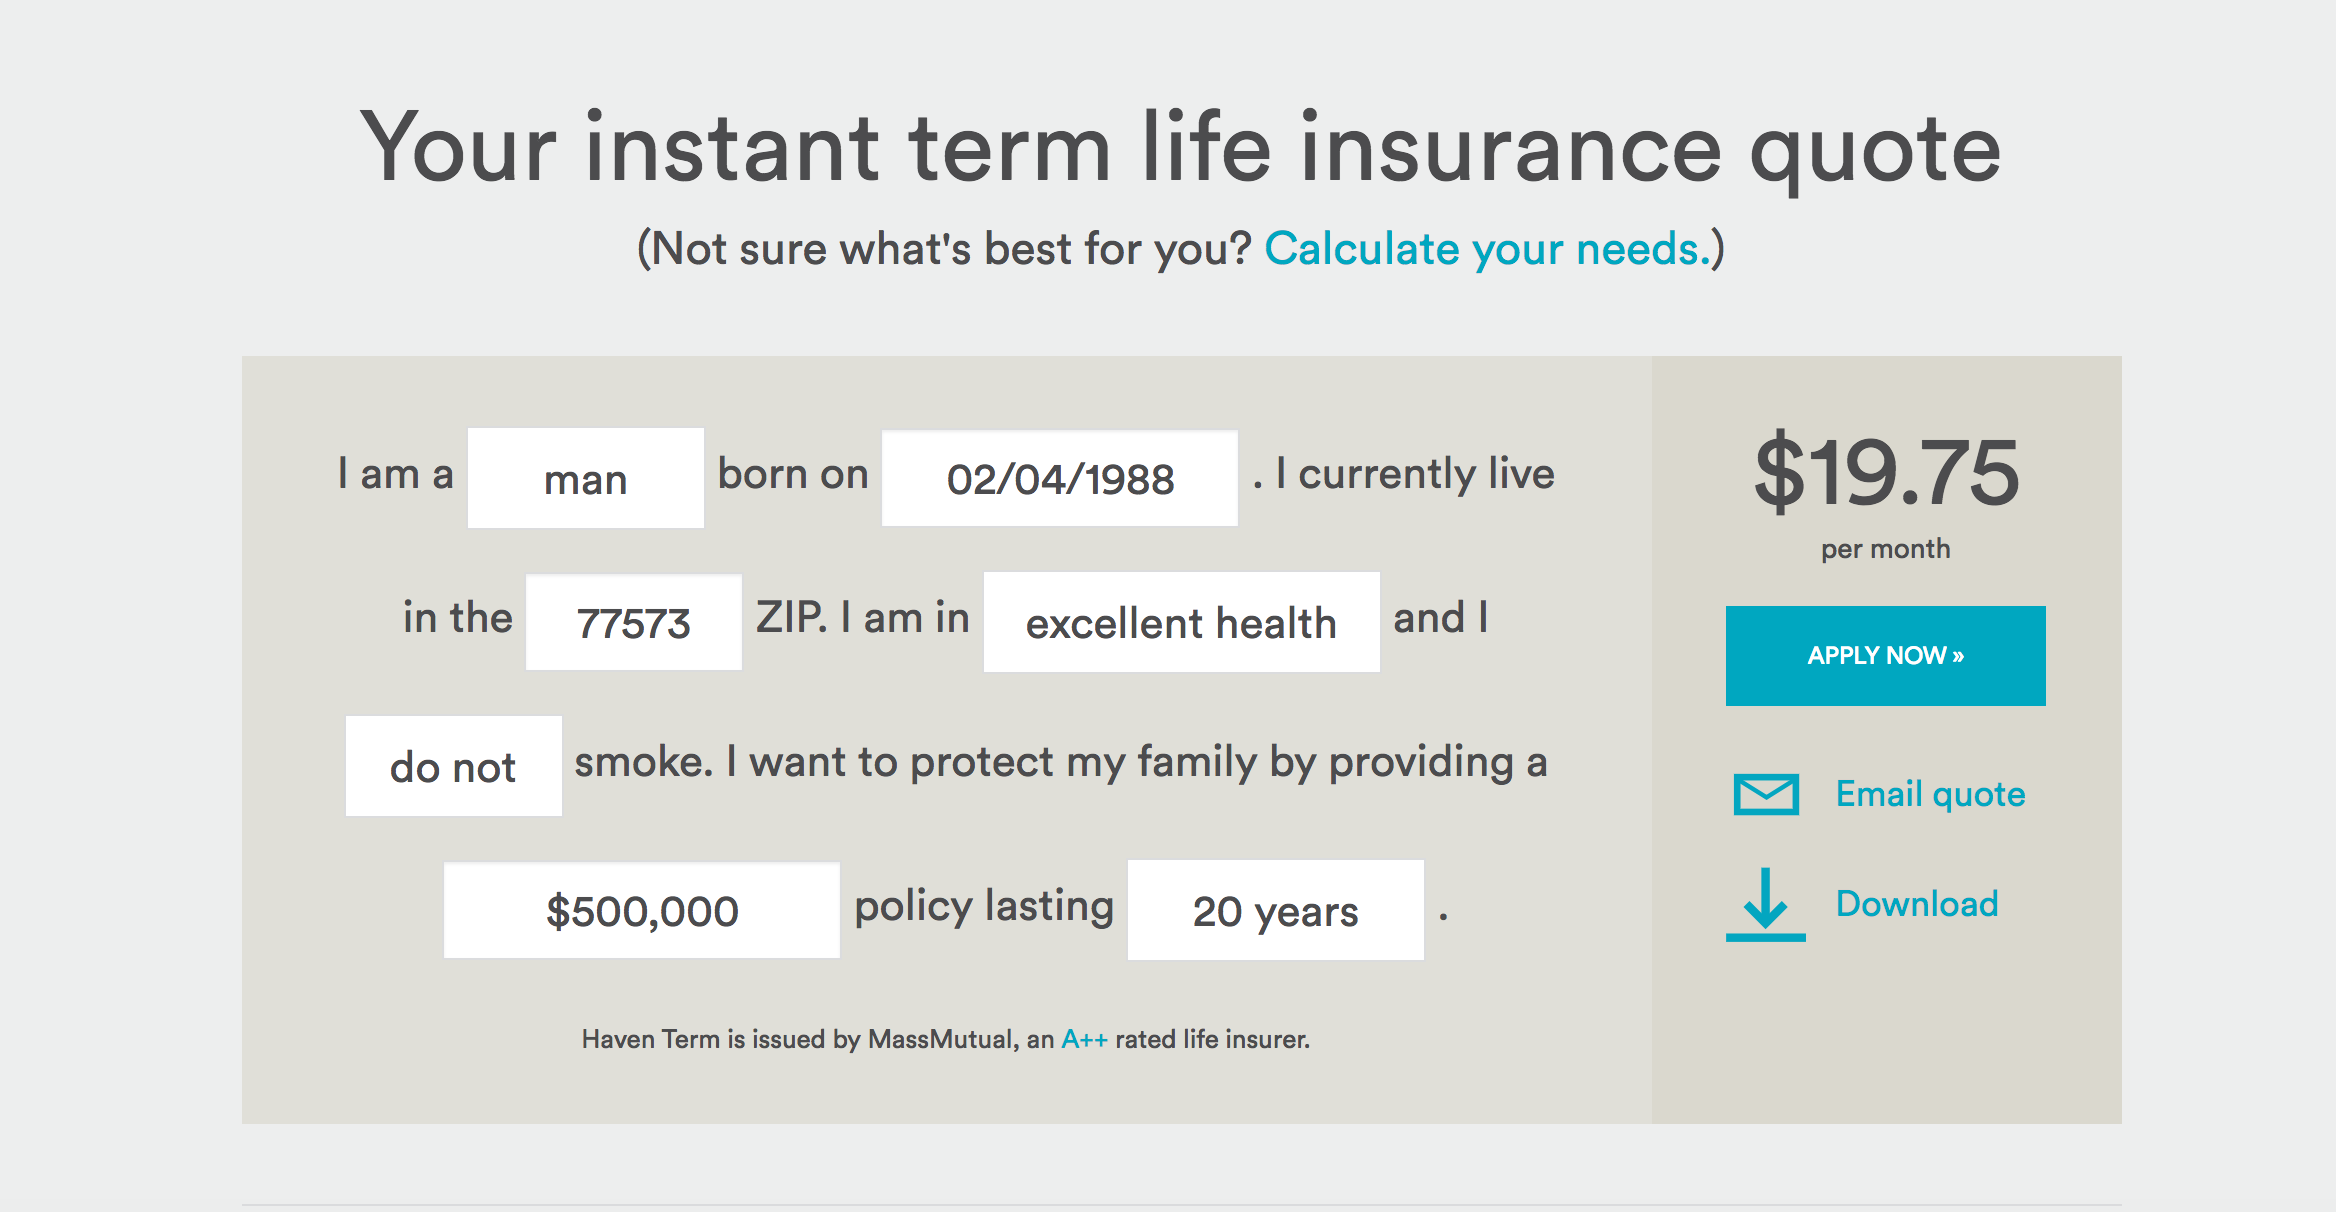 Instant Term Life Insurance Quotes Haven Life Insurance Review Fast Online Term Insurance